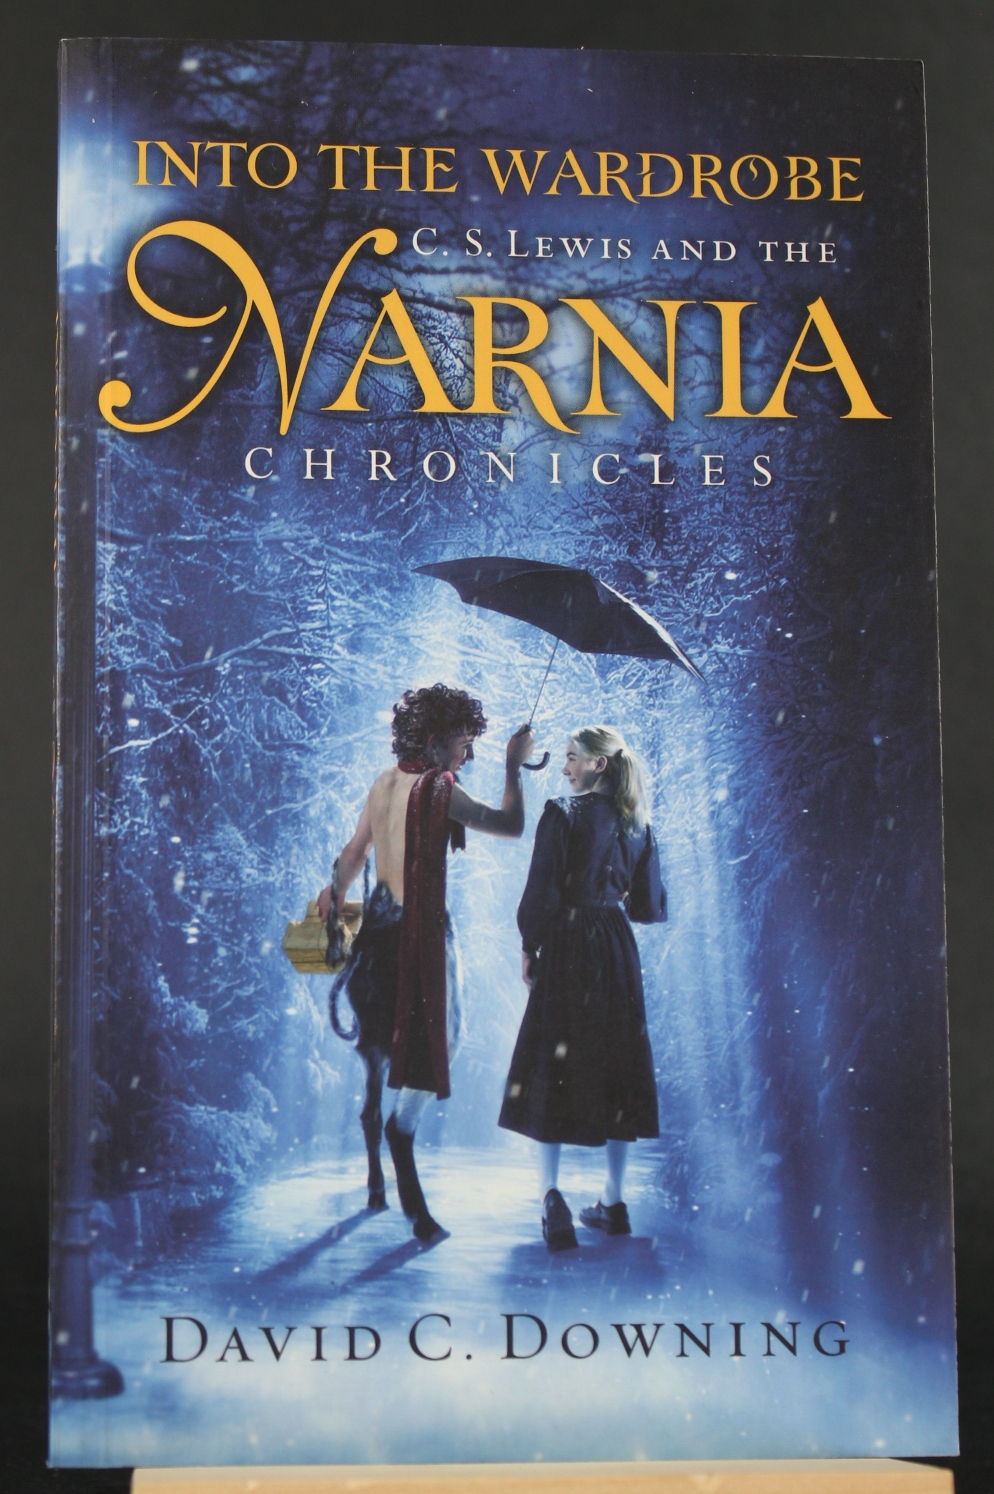 Image for Into the Wardrobe: C. S. Lewis and the Narnia Chronicles